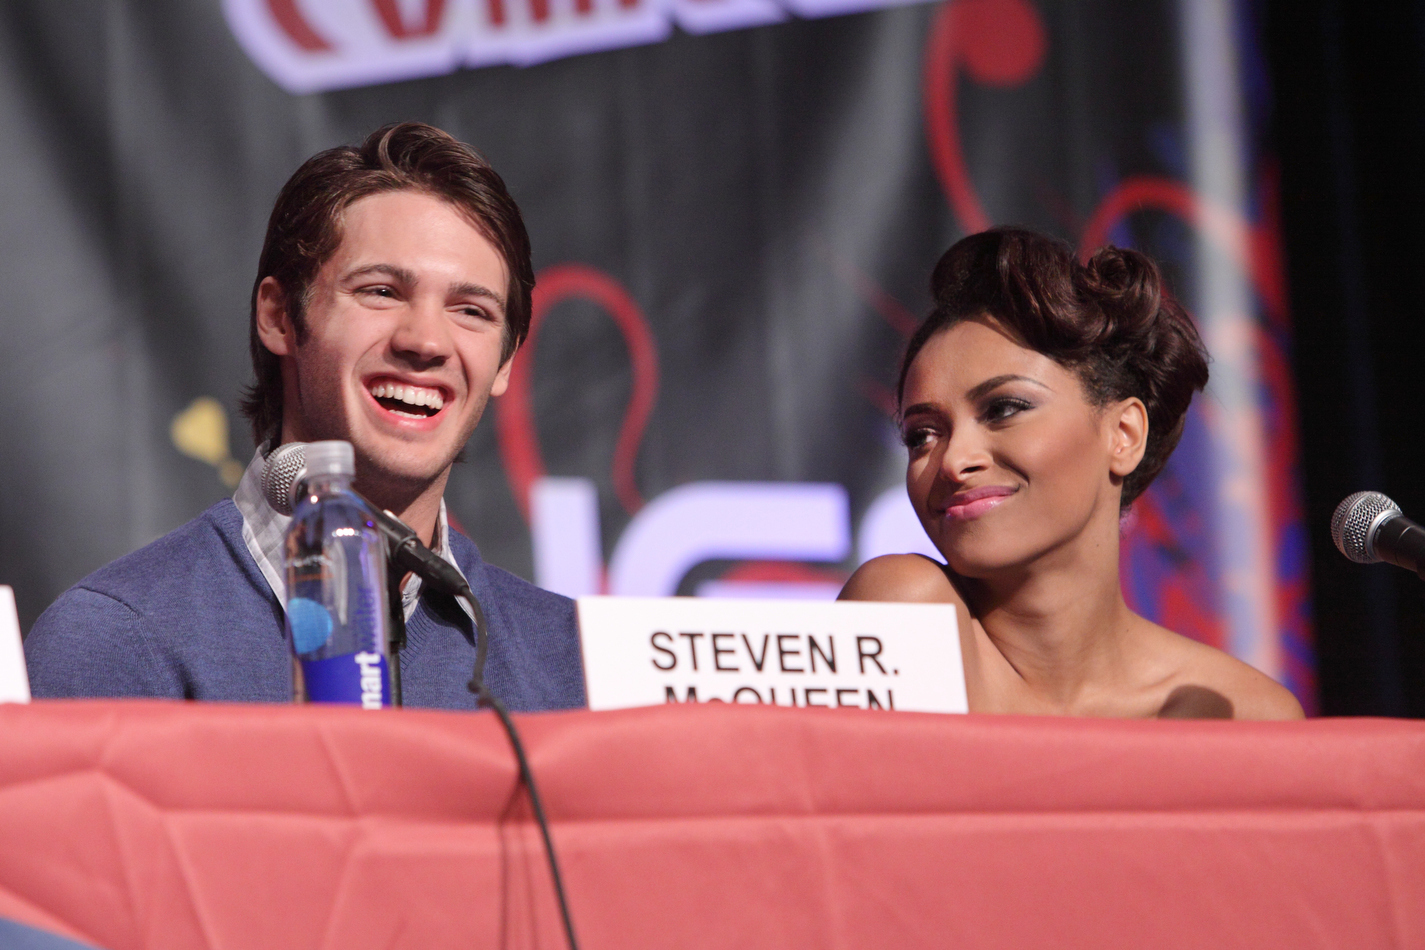 http://images4.fanpop.com/image/photos/16200000/New-York-Comic-Con-the-vampire-diaries-16246900-1425-950.jpg